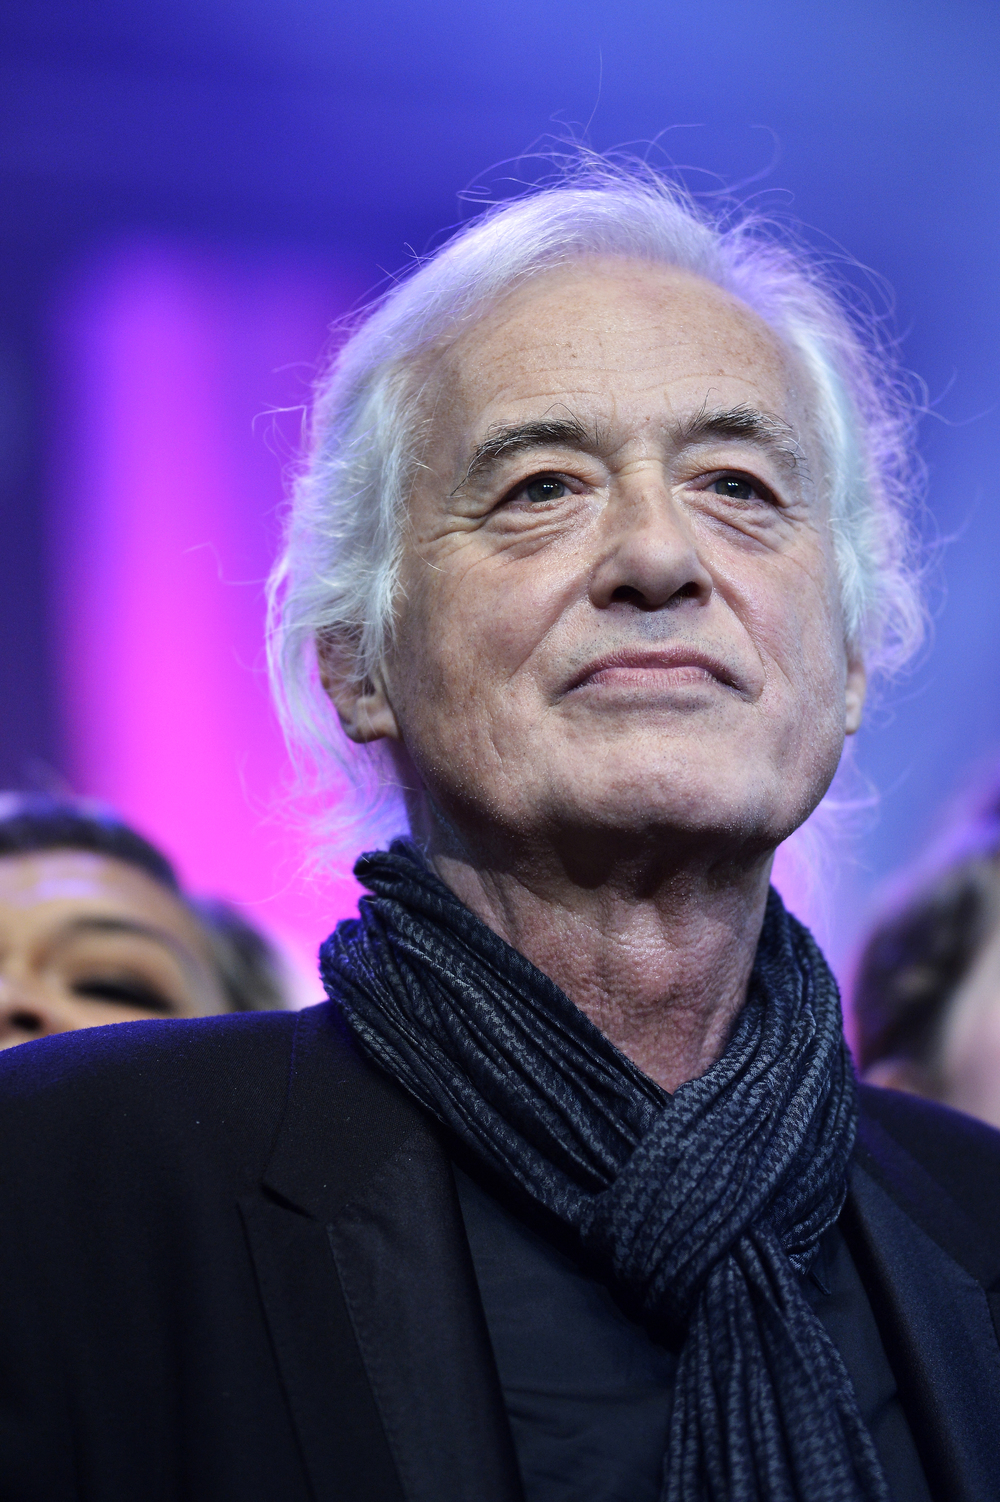 Jimmy Page at Berklee College of Music